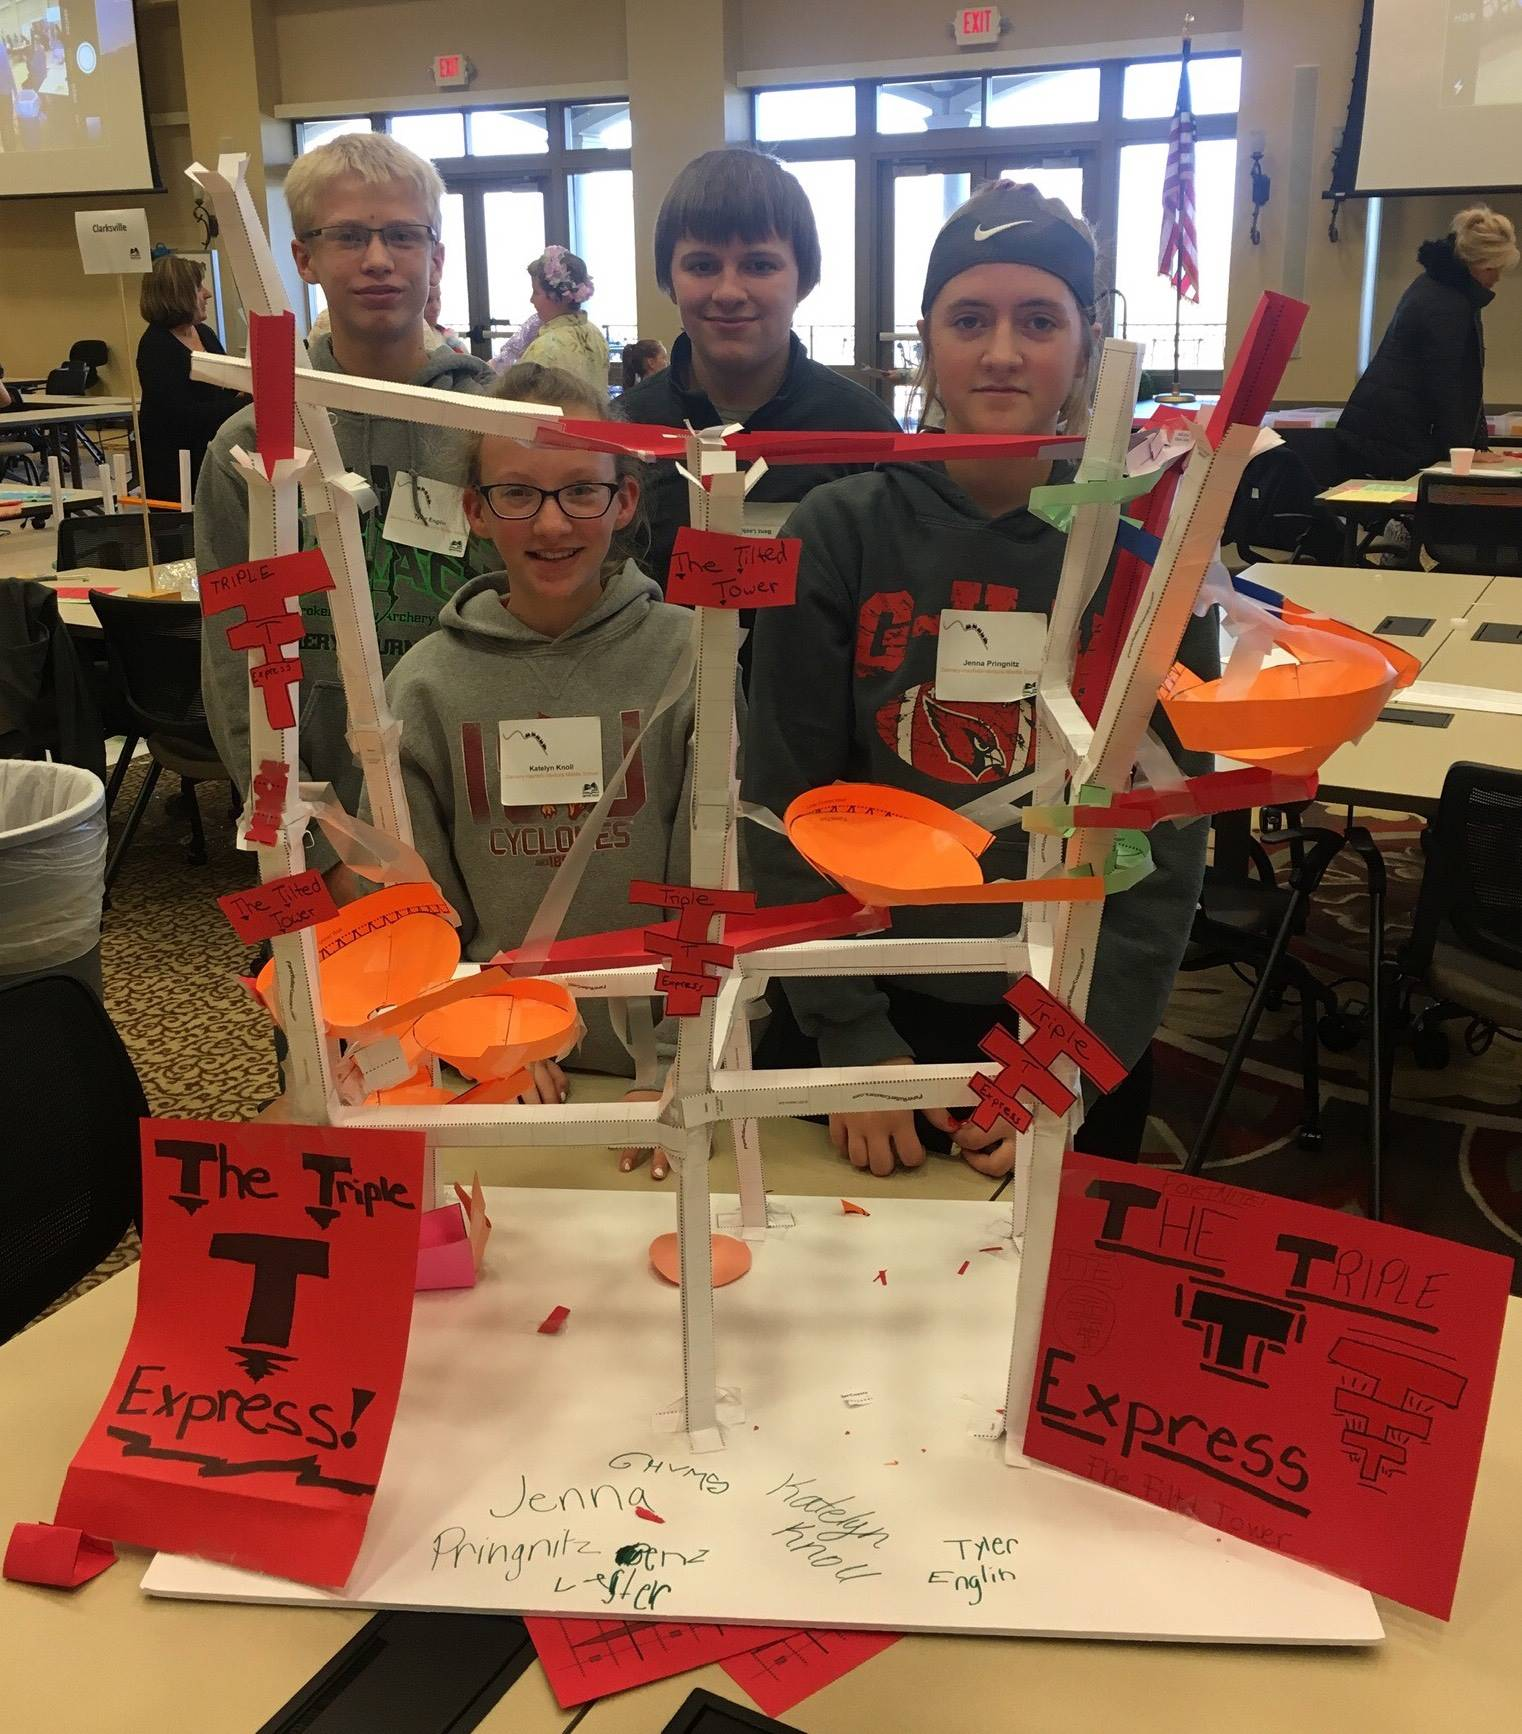 Students participating in a paper roller coaster competition